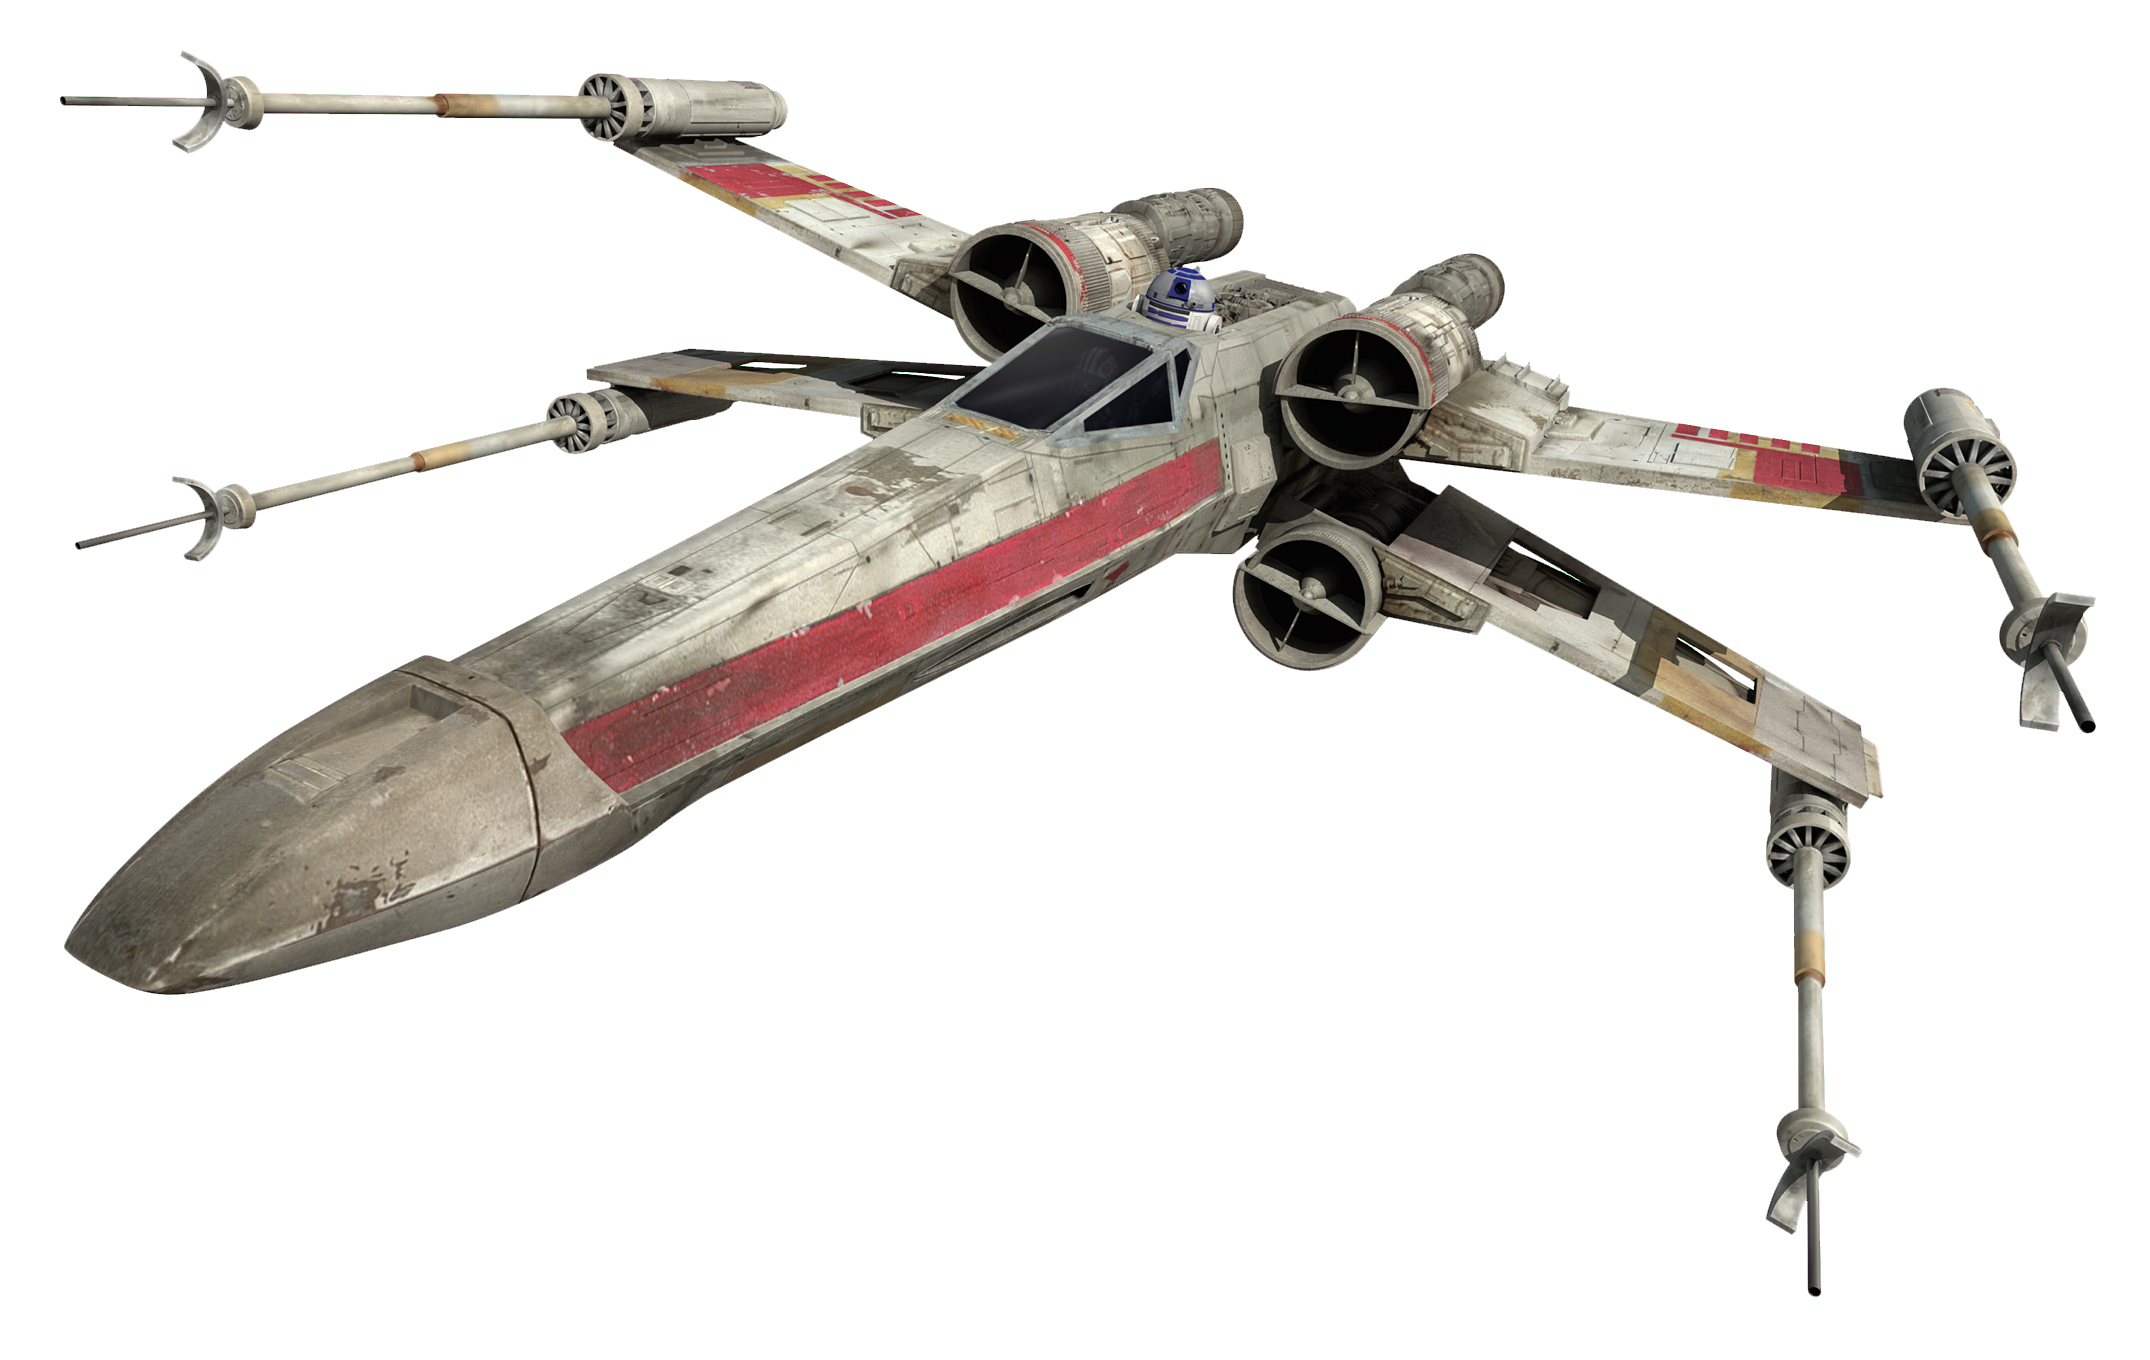 Star Wars Ships Png (113+ images in Collection) Page 2.